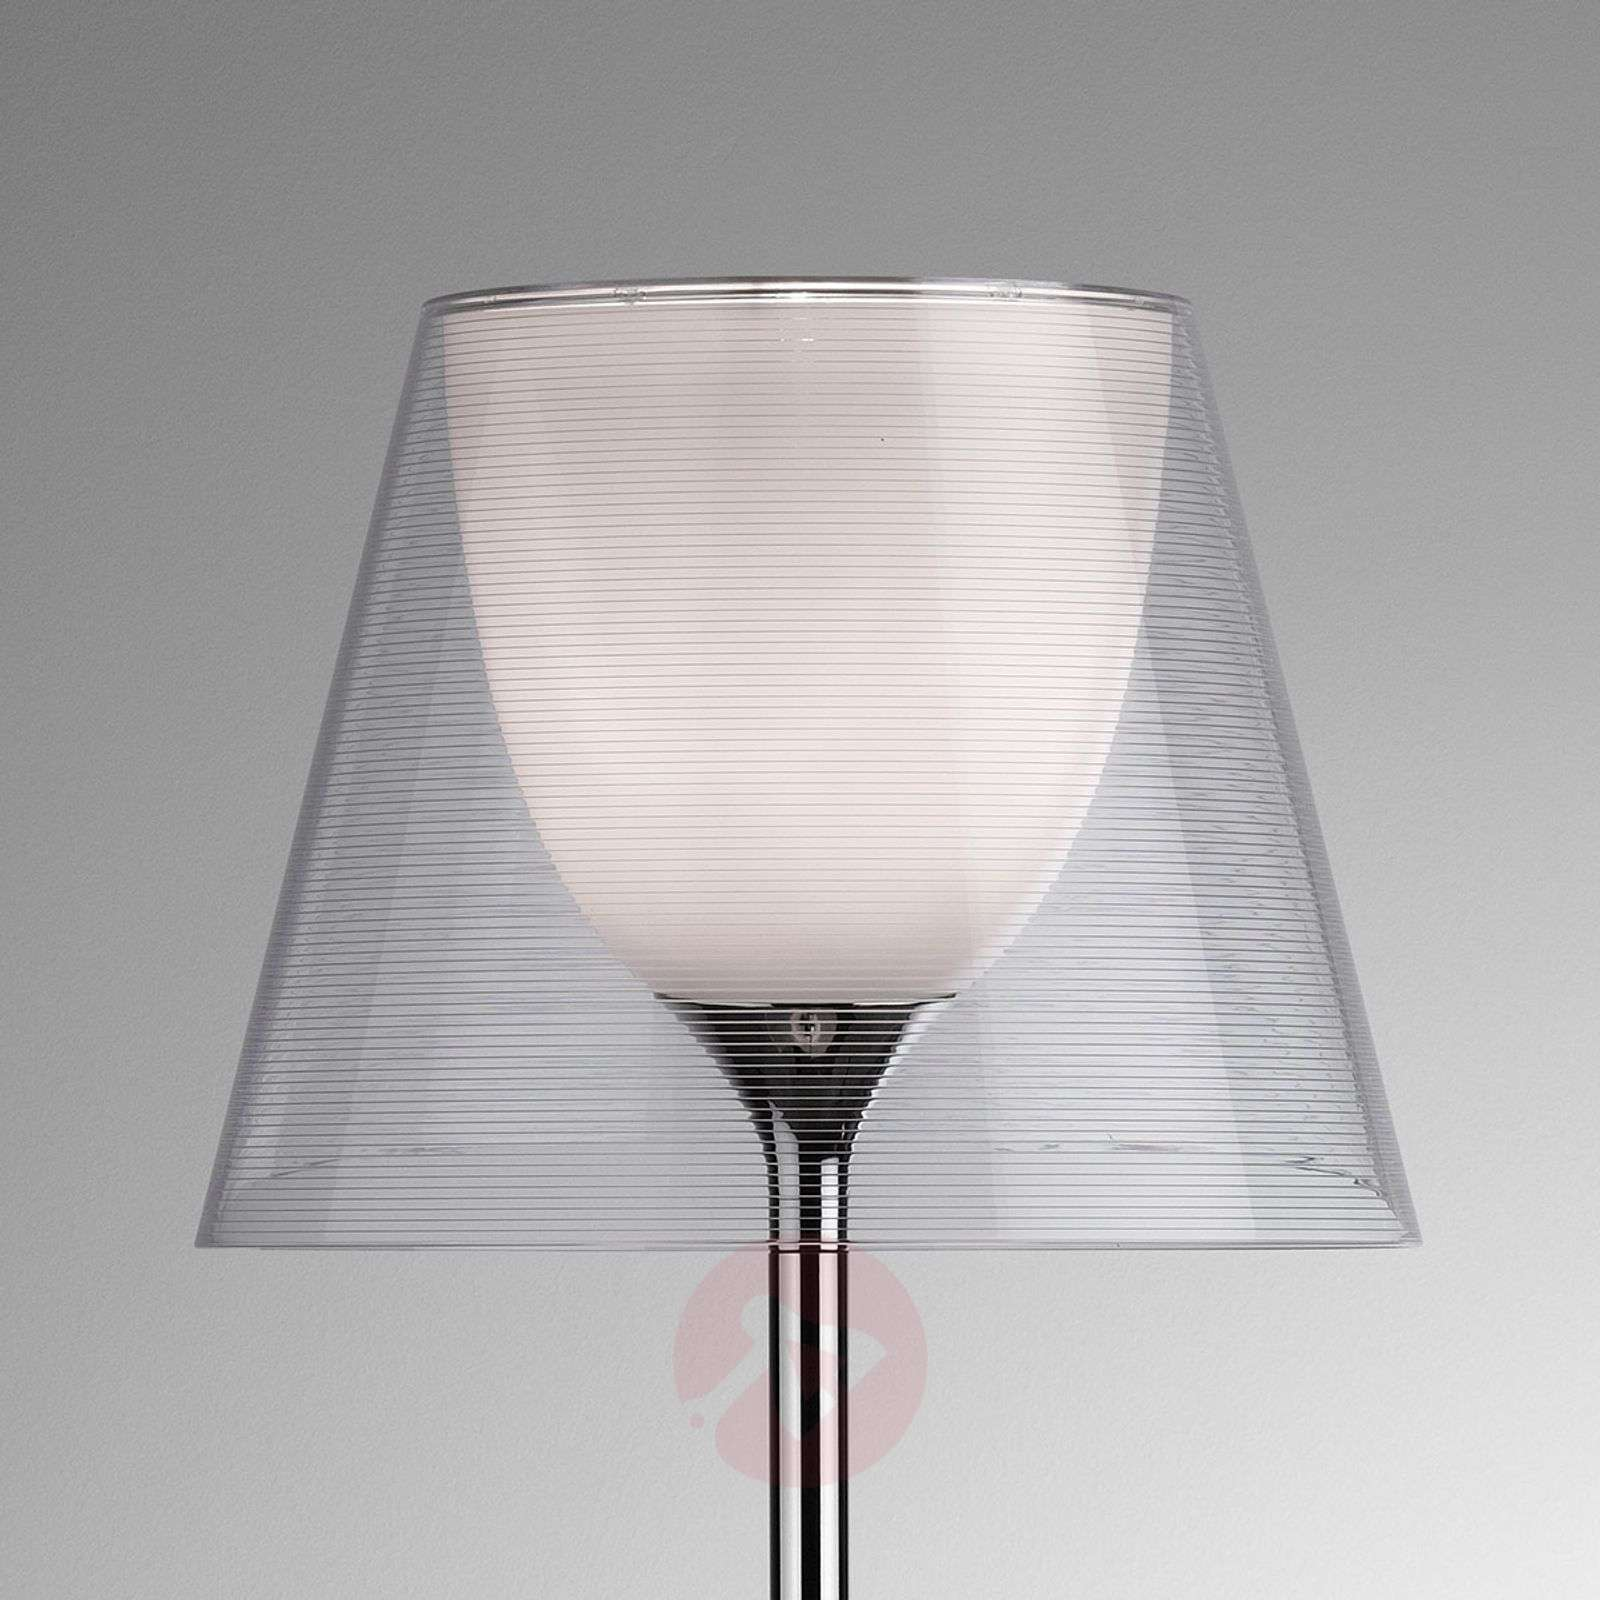 Design-vloerlamp Bibliotheque Nationale, transp.-3510275-01